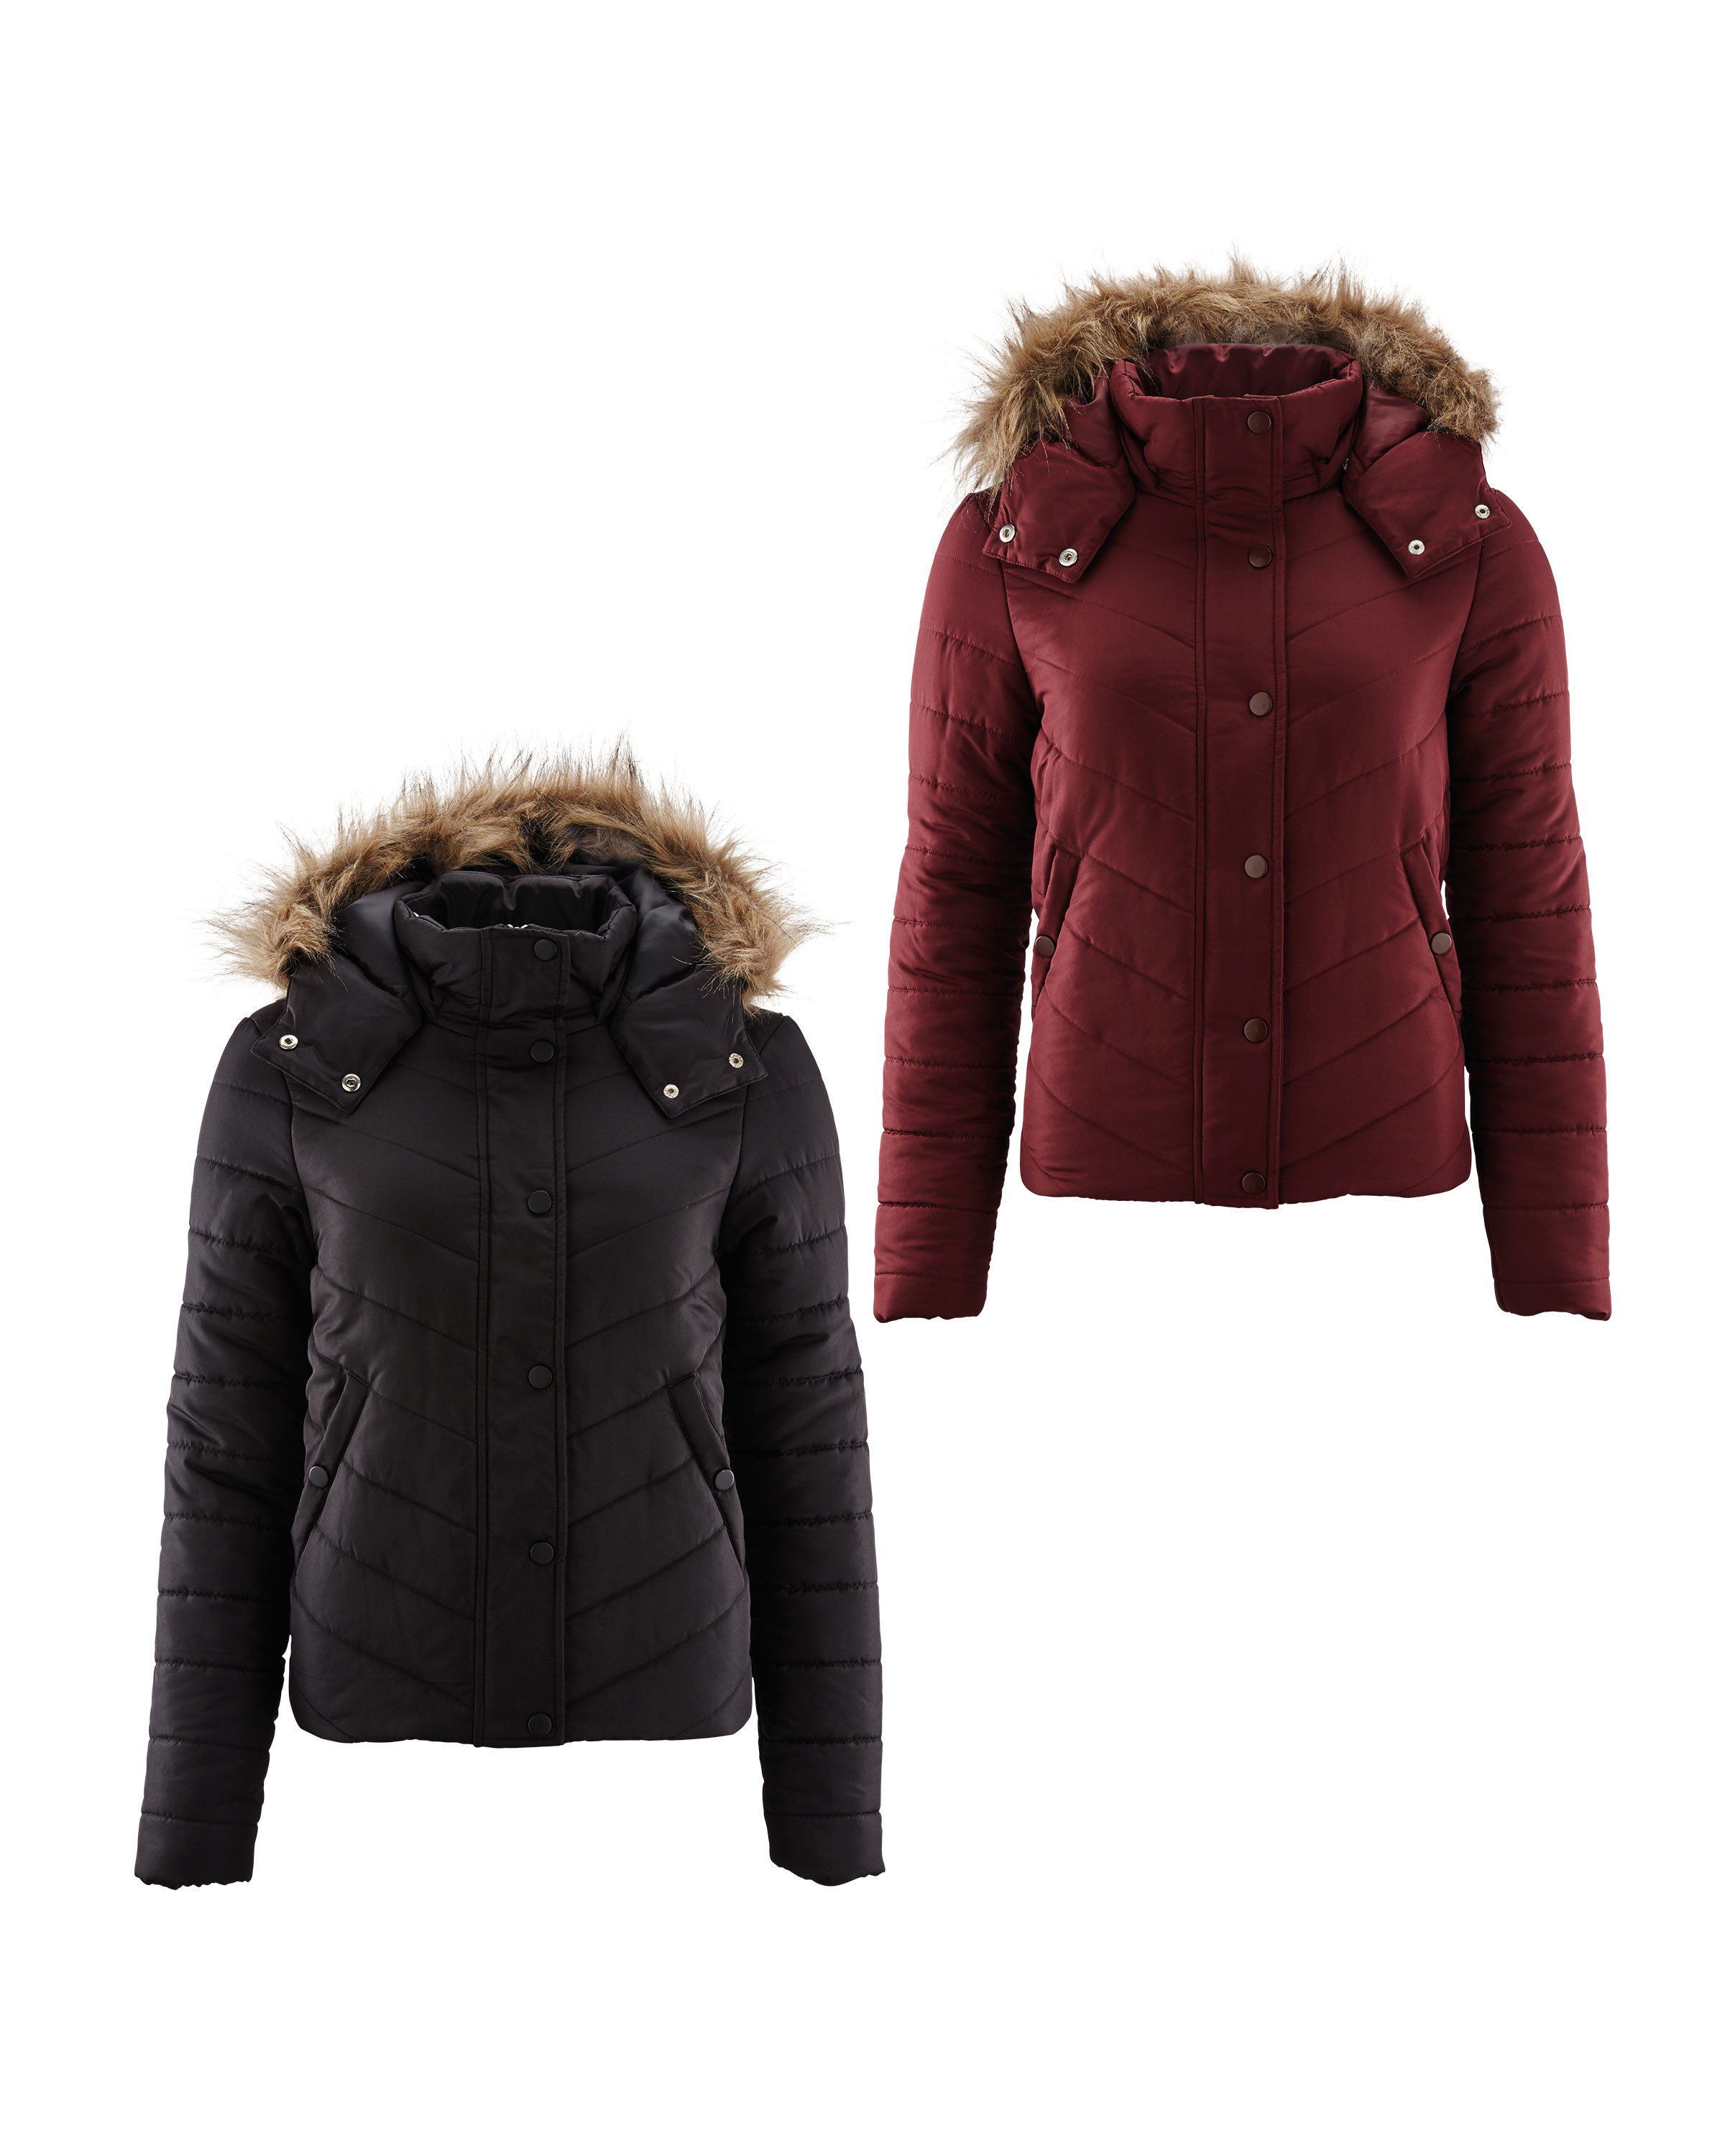 Ladies' Padded Jacket - ALDI UK